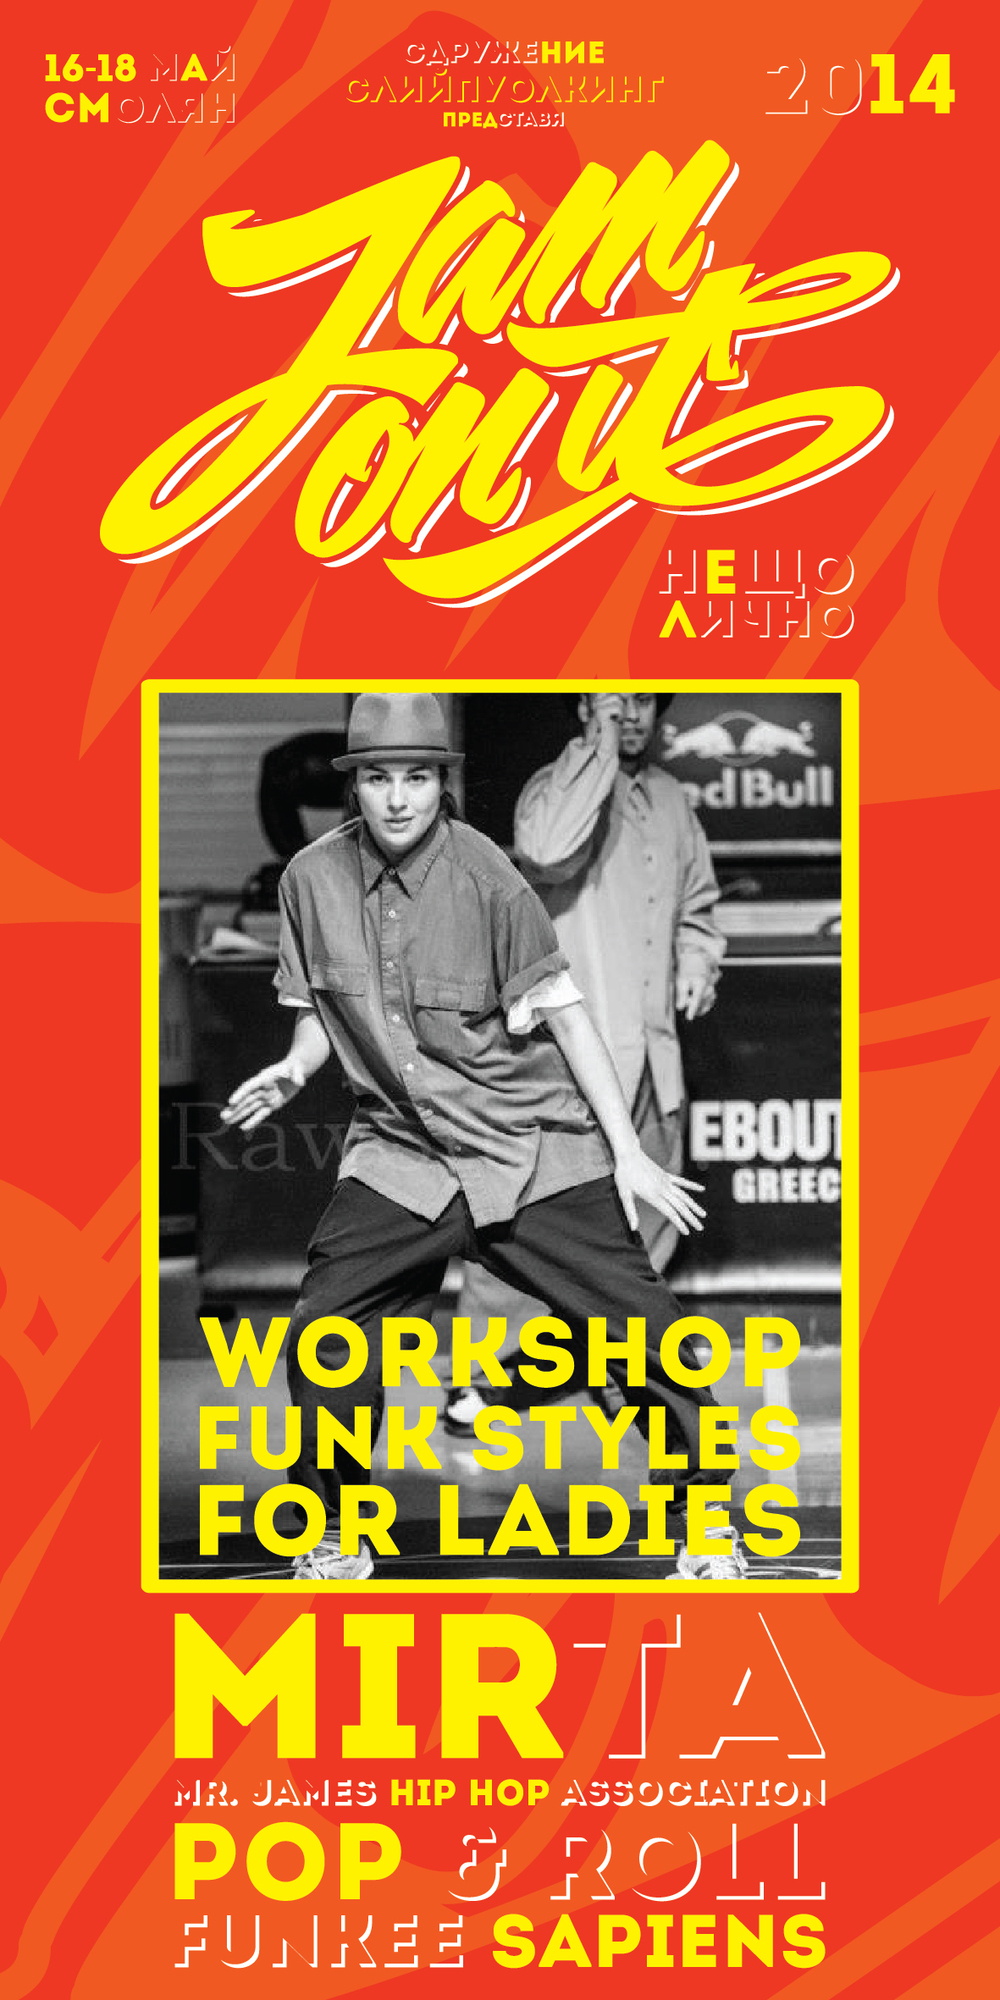 Workshop - 17.05.2013, 12:00h, Smolyan Funk Styles For Laides with Mirta from Pop&Roll, Mr. James HIP HOP association Croatia,   Price - 20 BGN/10 EUR